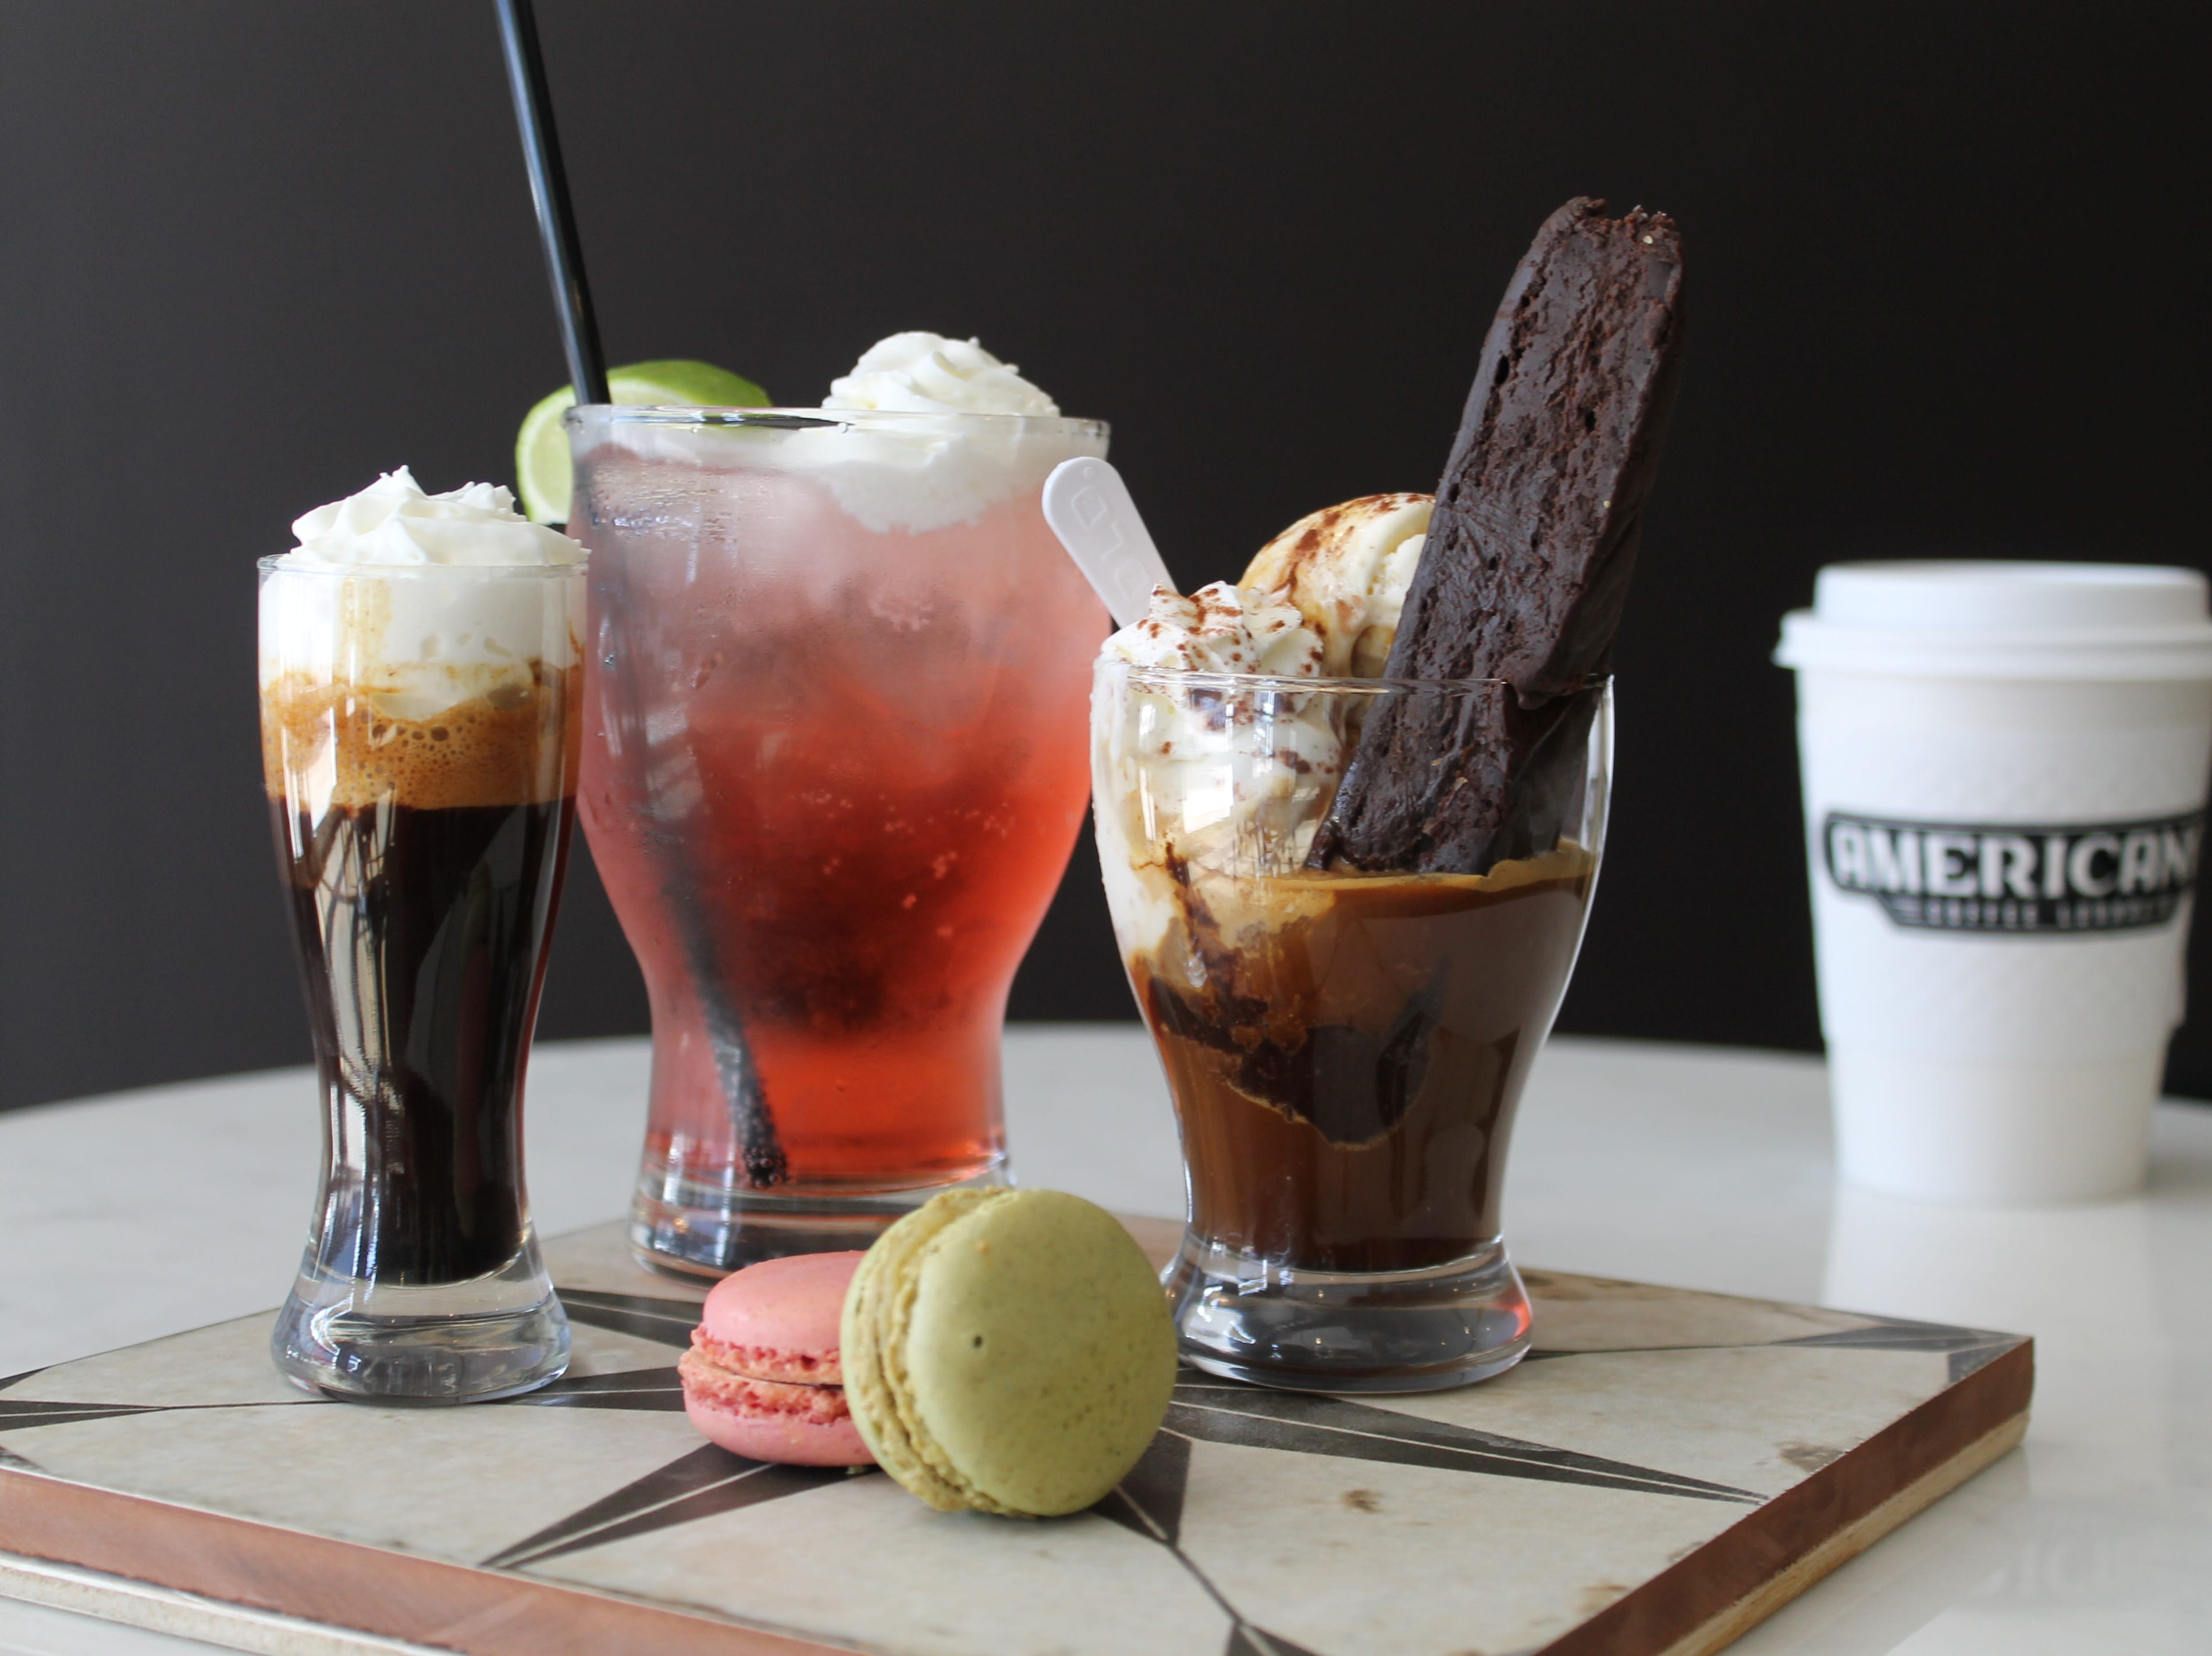 Americano Coffee Lounge offers an array of desserts.